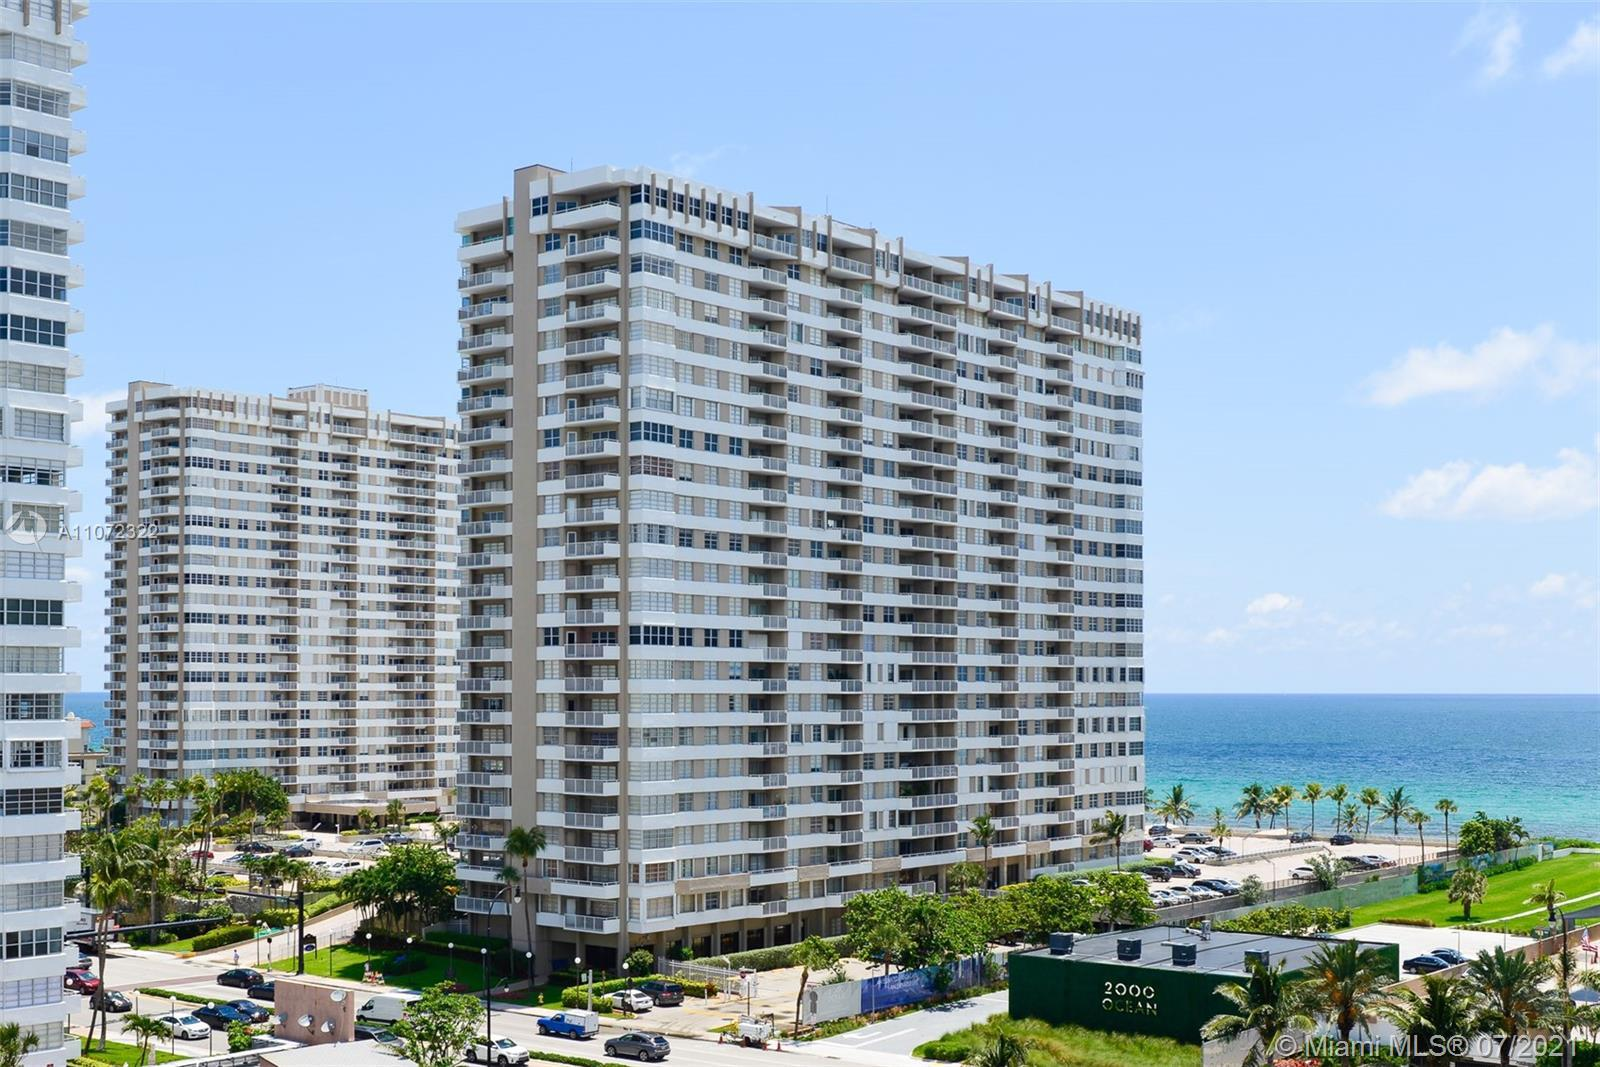 2 BEDROOM 2 BATH FACING SOUTH IN EXCELLENT CONDITION.  THE HEMISPHERES HAS AMENITIES EQUAL TO A 5 ST